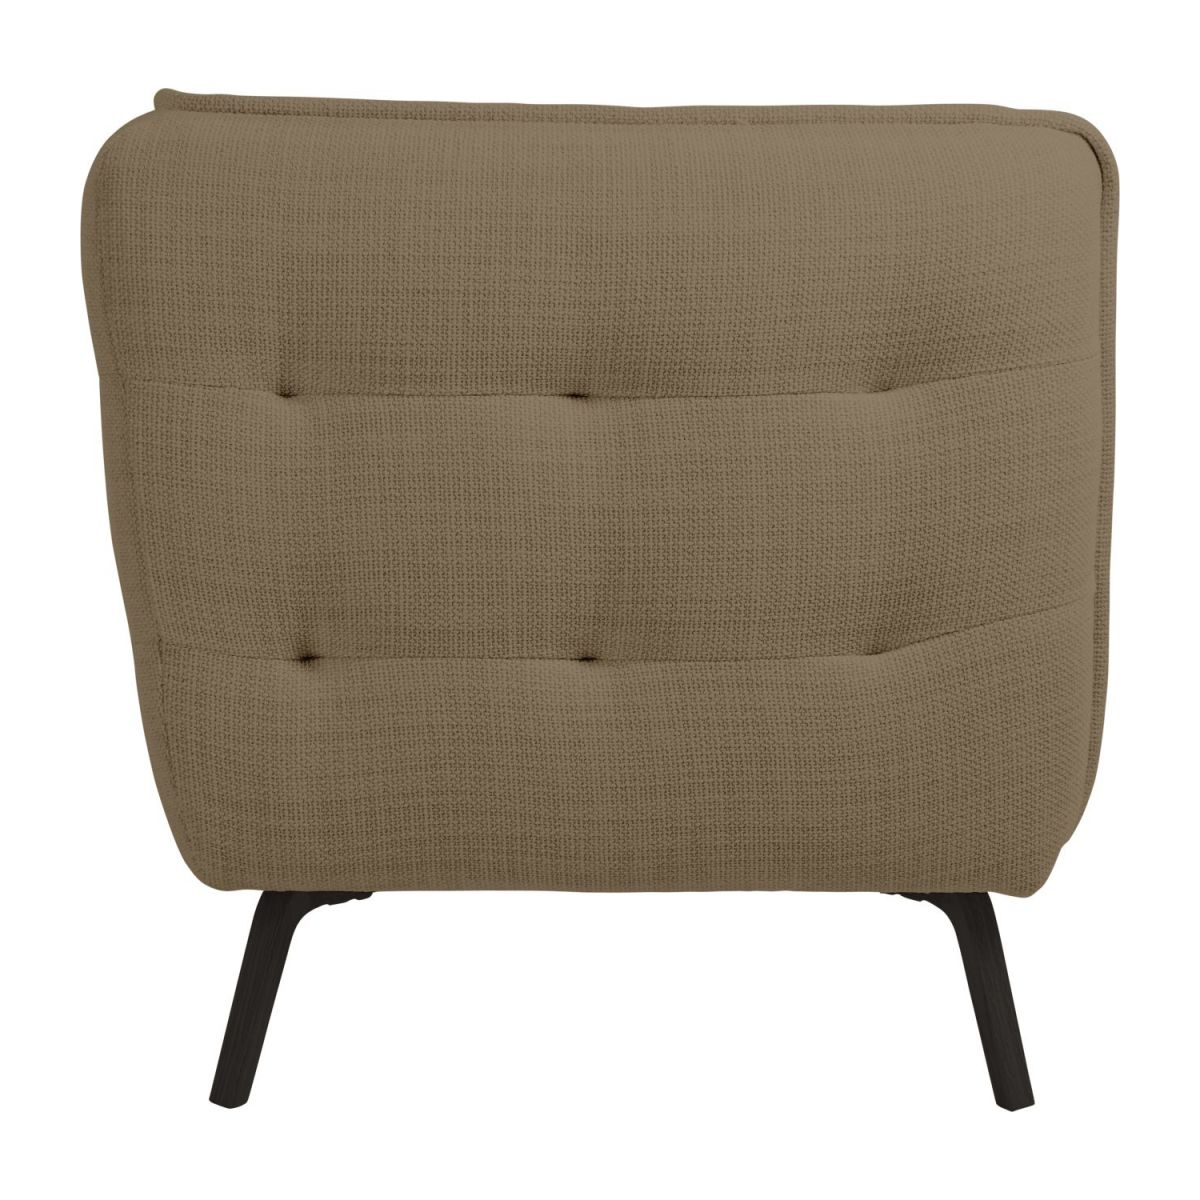 2 seater sofa in Fasoli fabric, jatoba brown and dark legs n°4